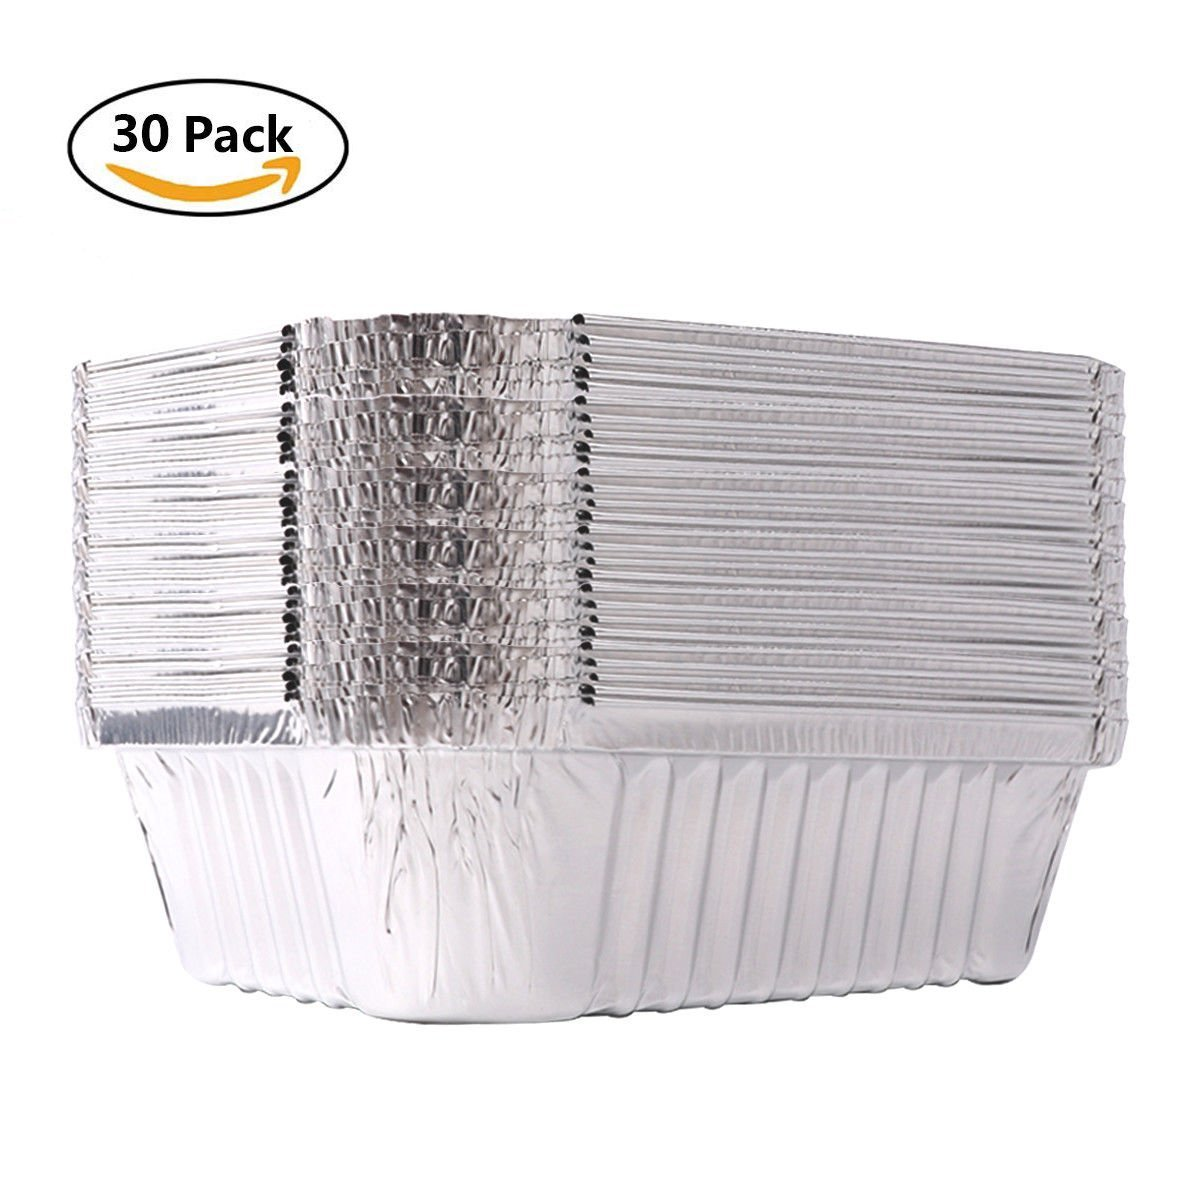 Paradox (30 Pack) Disposable Aluminum Foil Pans,BBQ Party Food Containers Take-Out Containers with Lids for Baking, Roasting, Broiling, Cooking, 7.3'' X 5.5'' X 2.0''(750ml) by Paradox